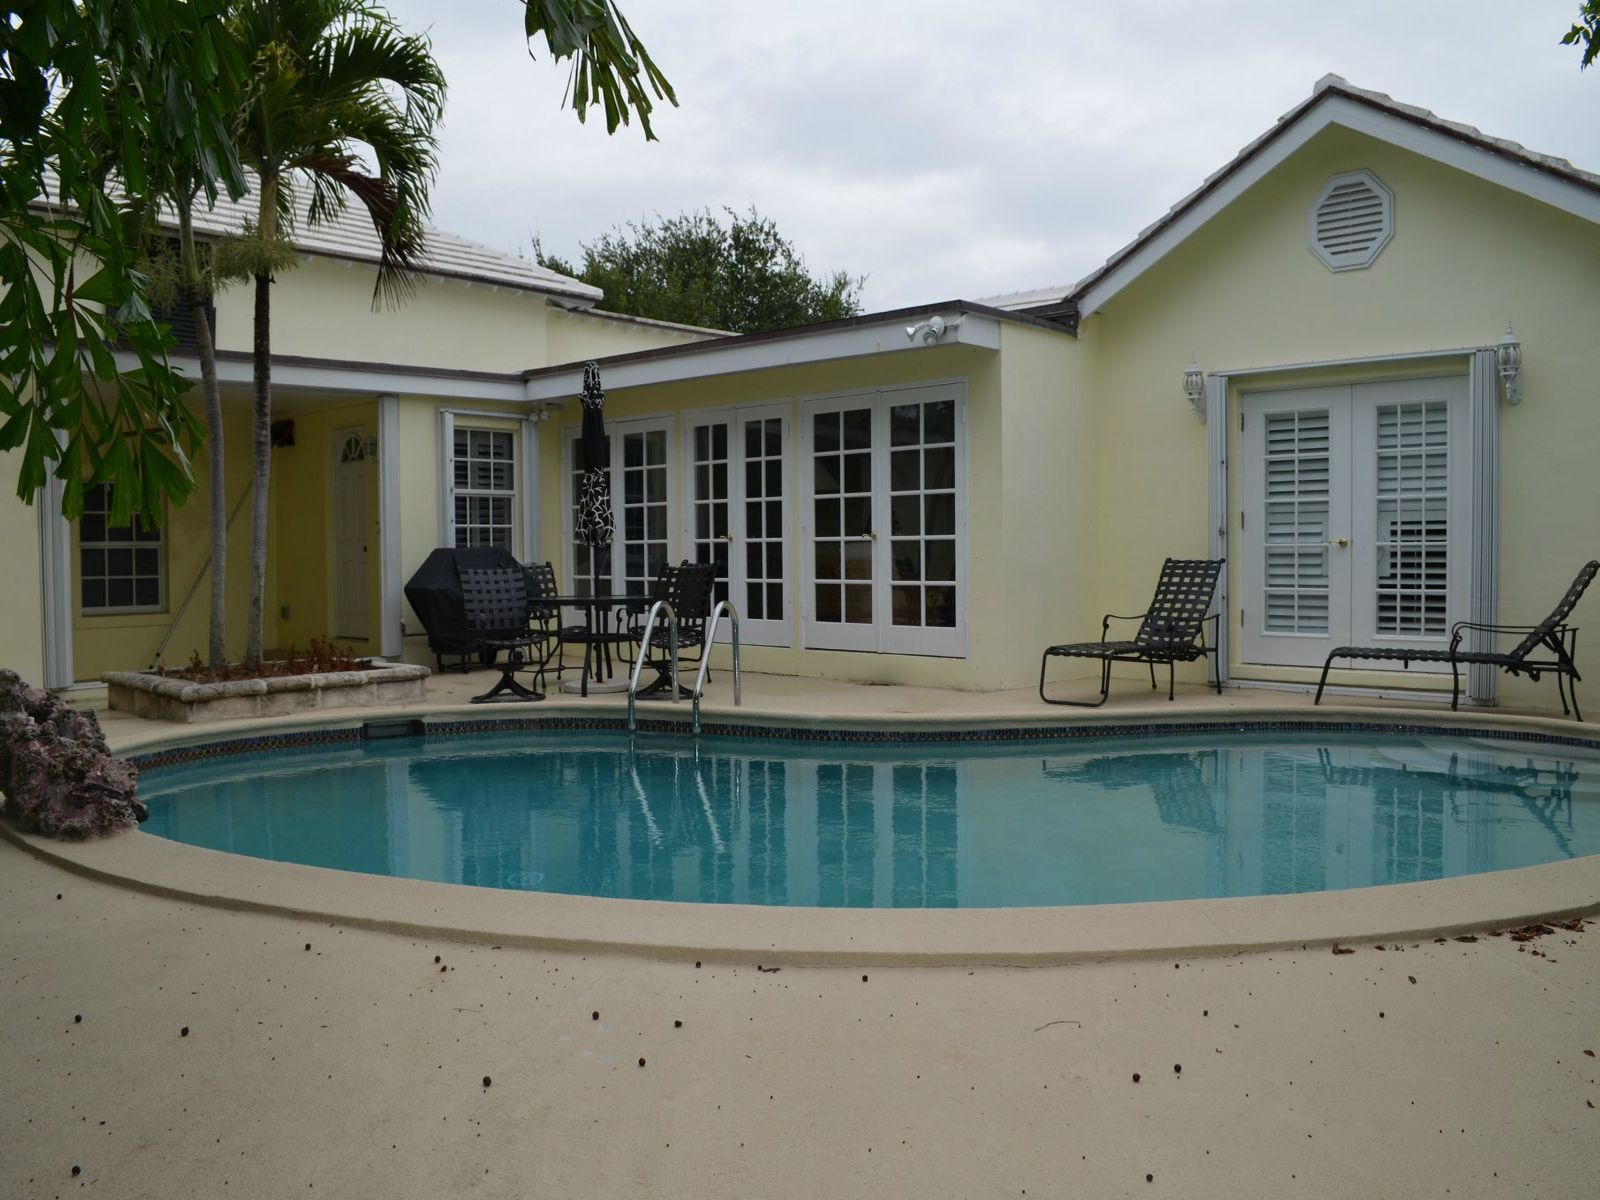 272 Southland Road, Palm Beach FL Single Family Home - Palm Beach Real Estate